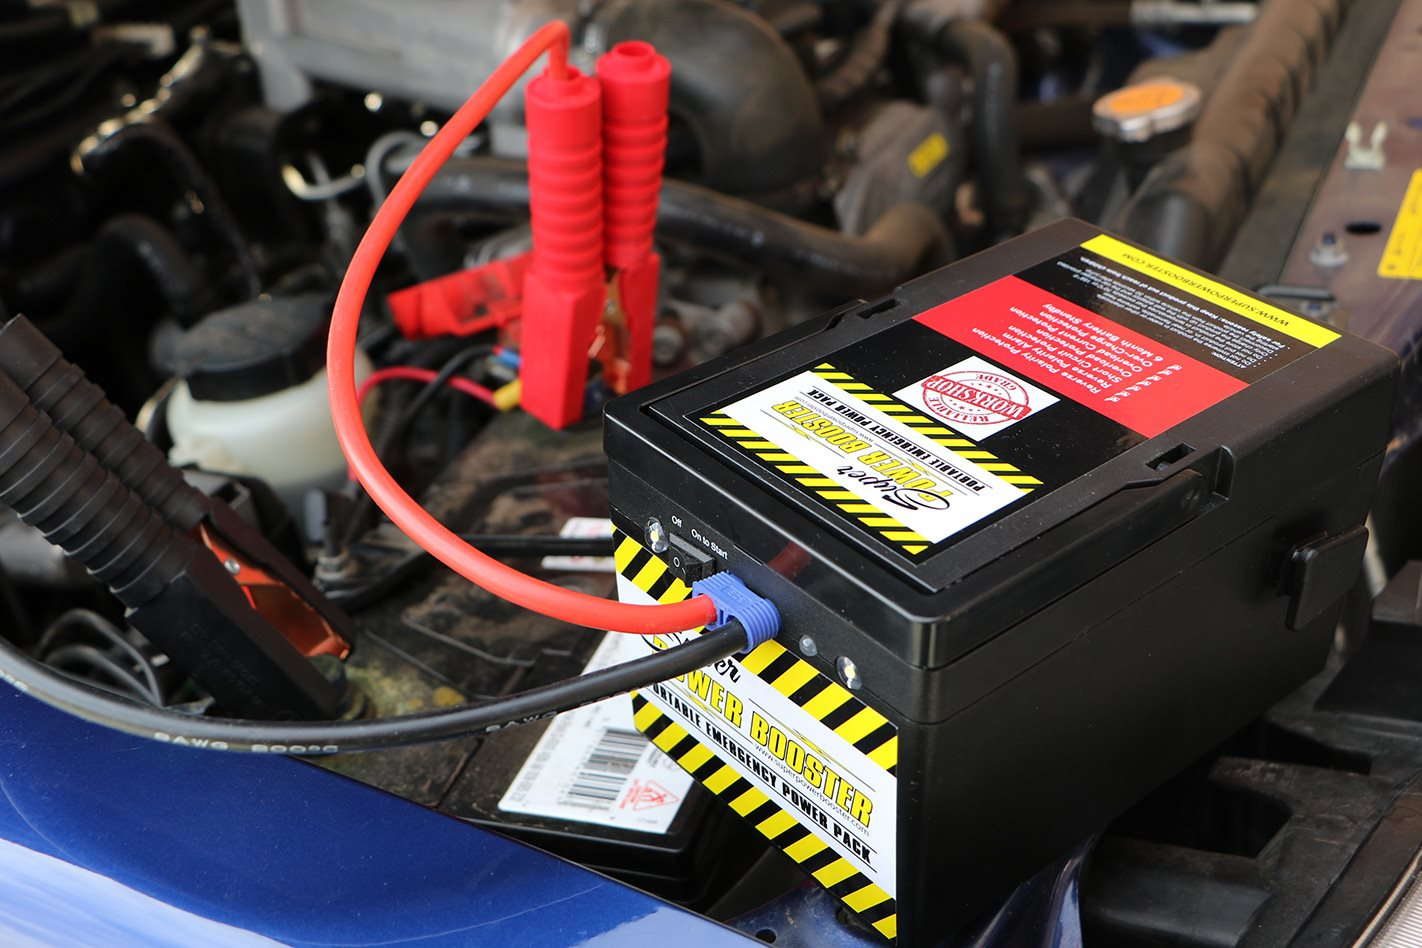 Super Power Booster battery charging a car